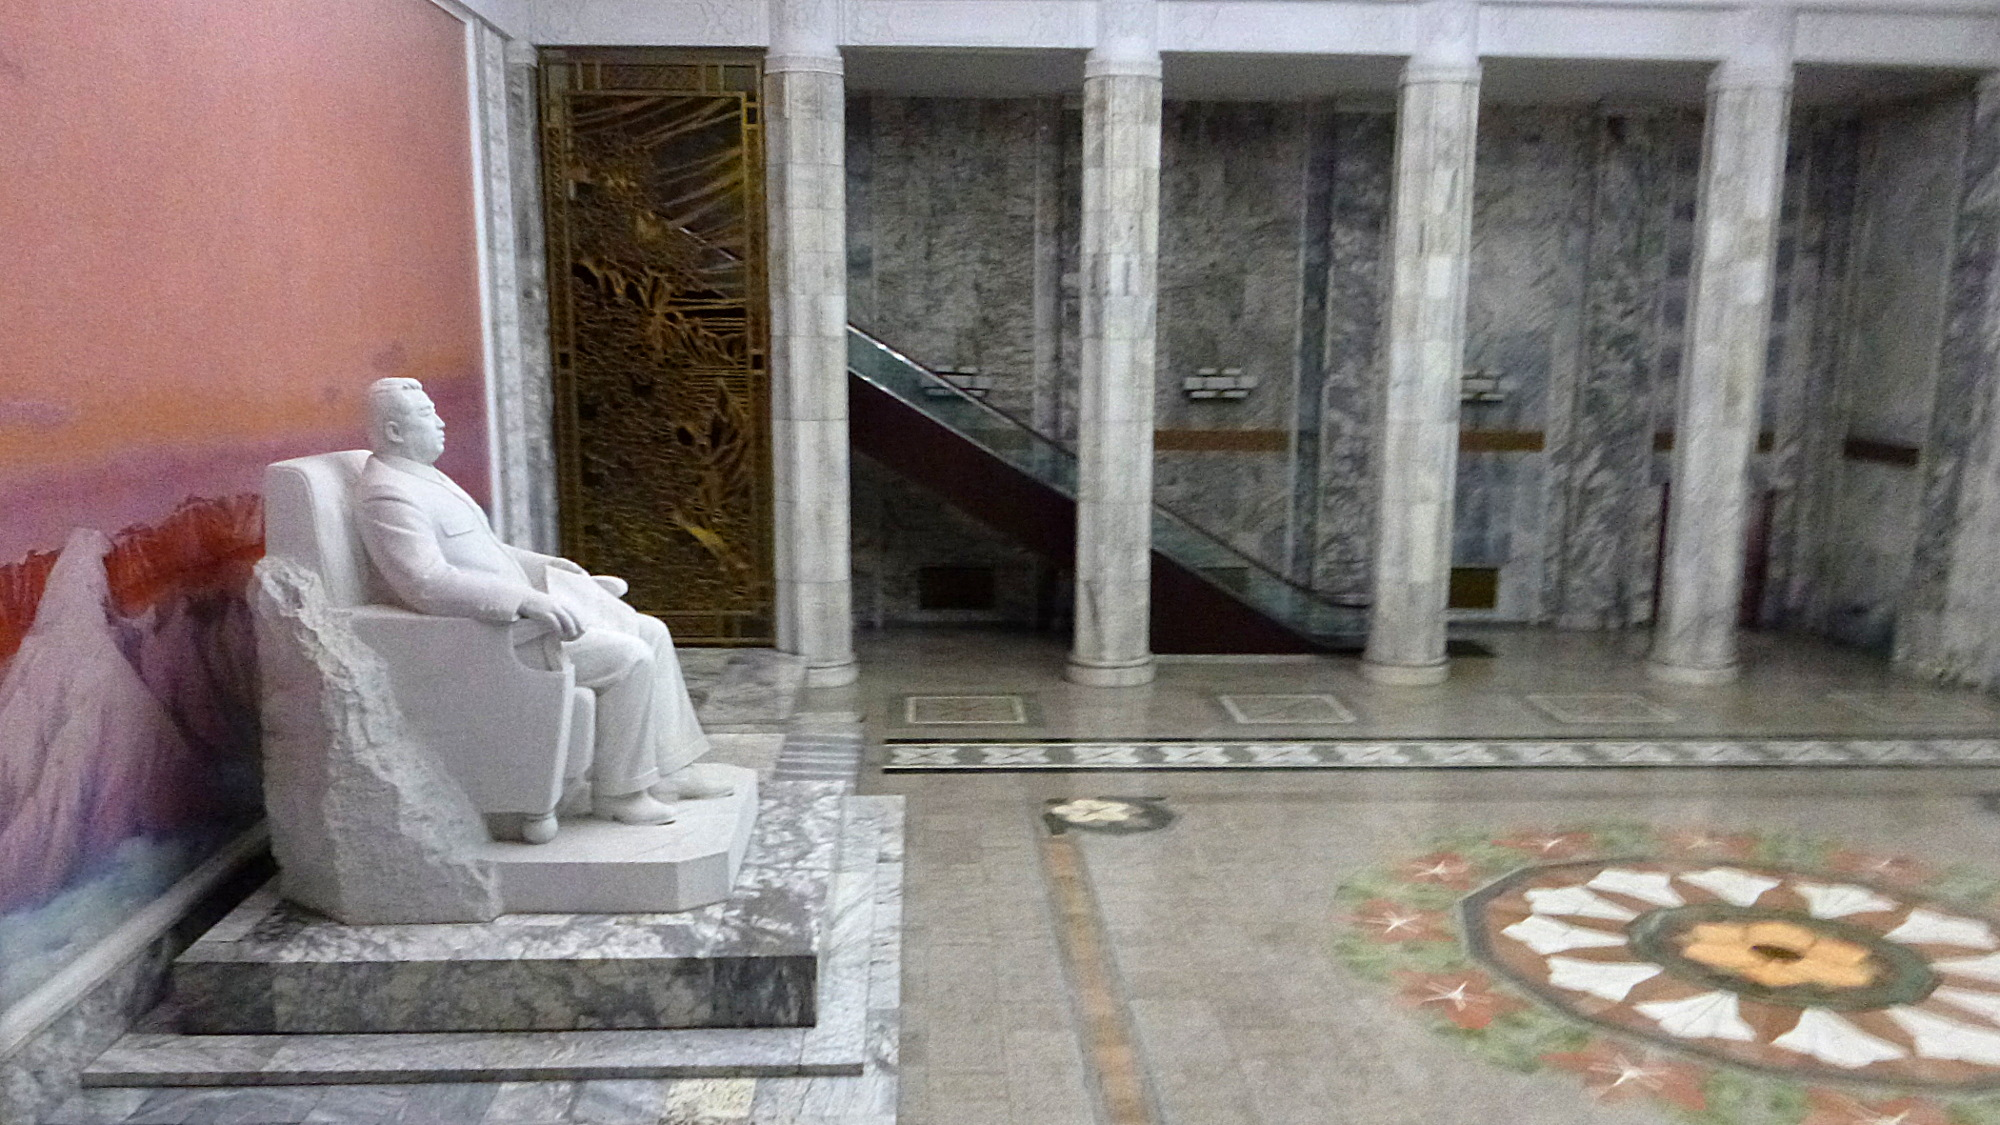 The entrance hall of the Grand People's Study House in Pyongyang wih marble floow and a statue of Kim Il-Sung.